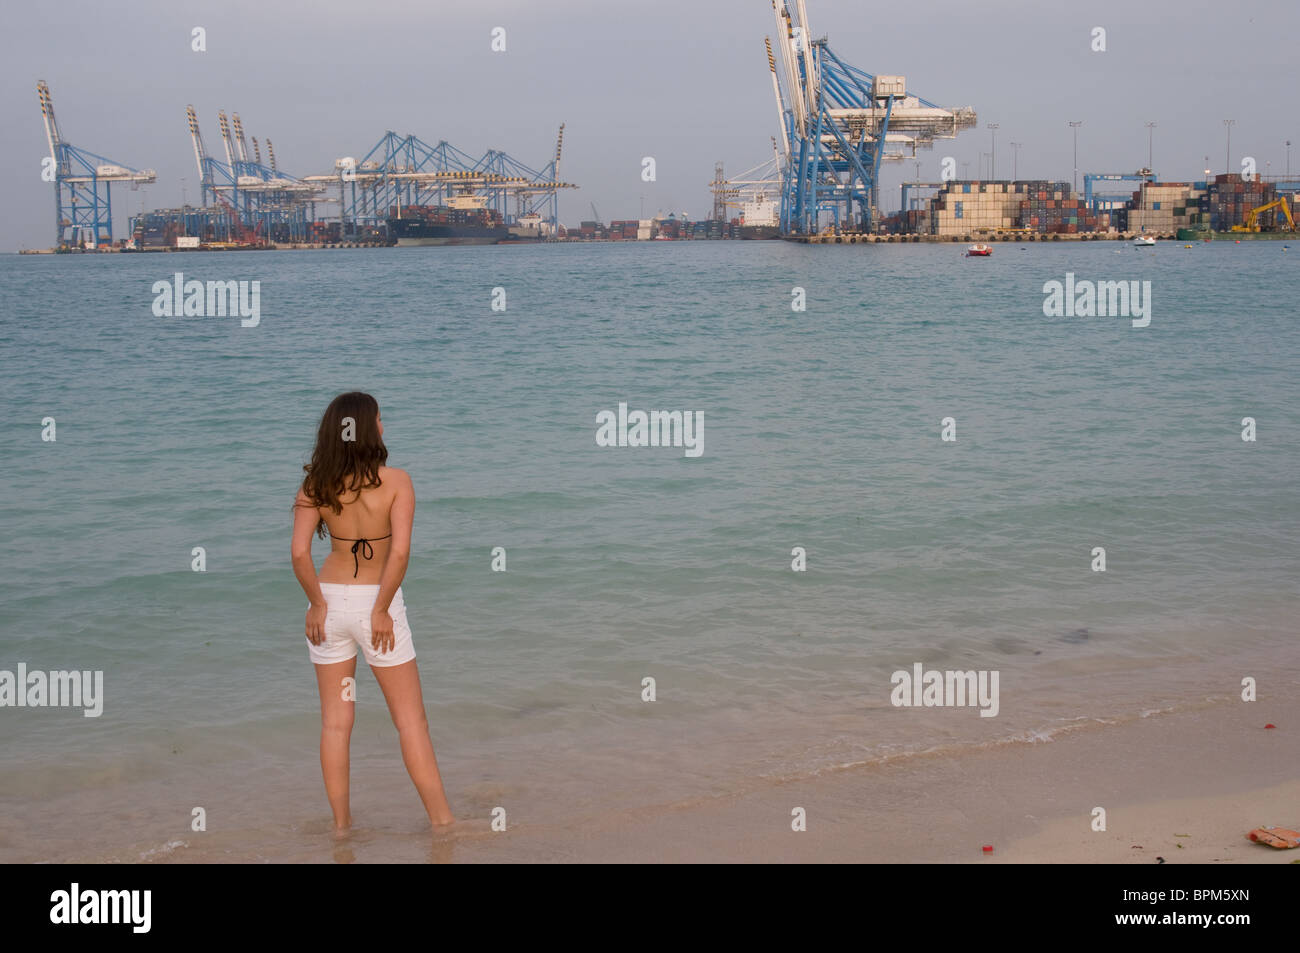 A girl stands on the beach at Pretty Bay, Birzabbugia, Malta looking across to the ships in Freeport docks - Stock Image